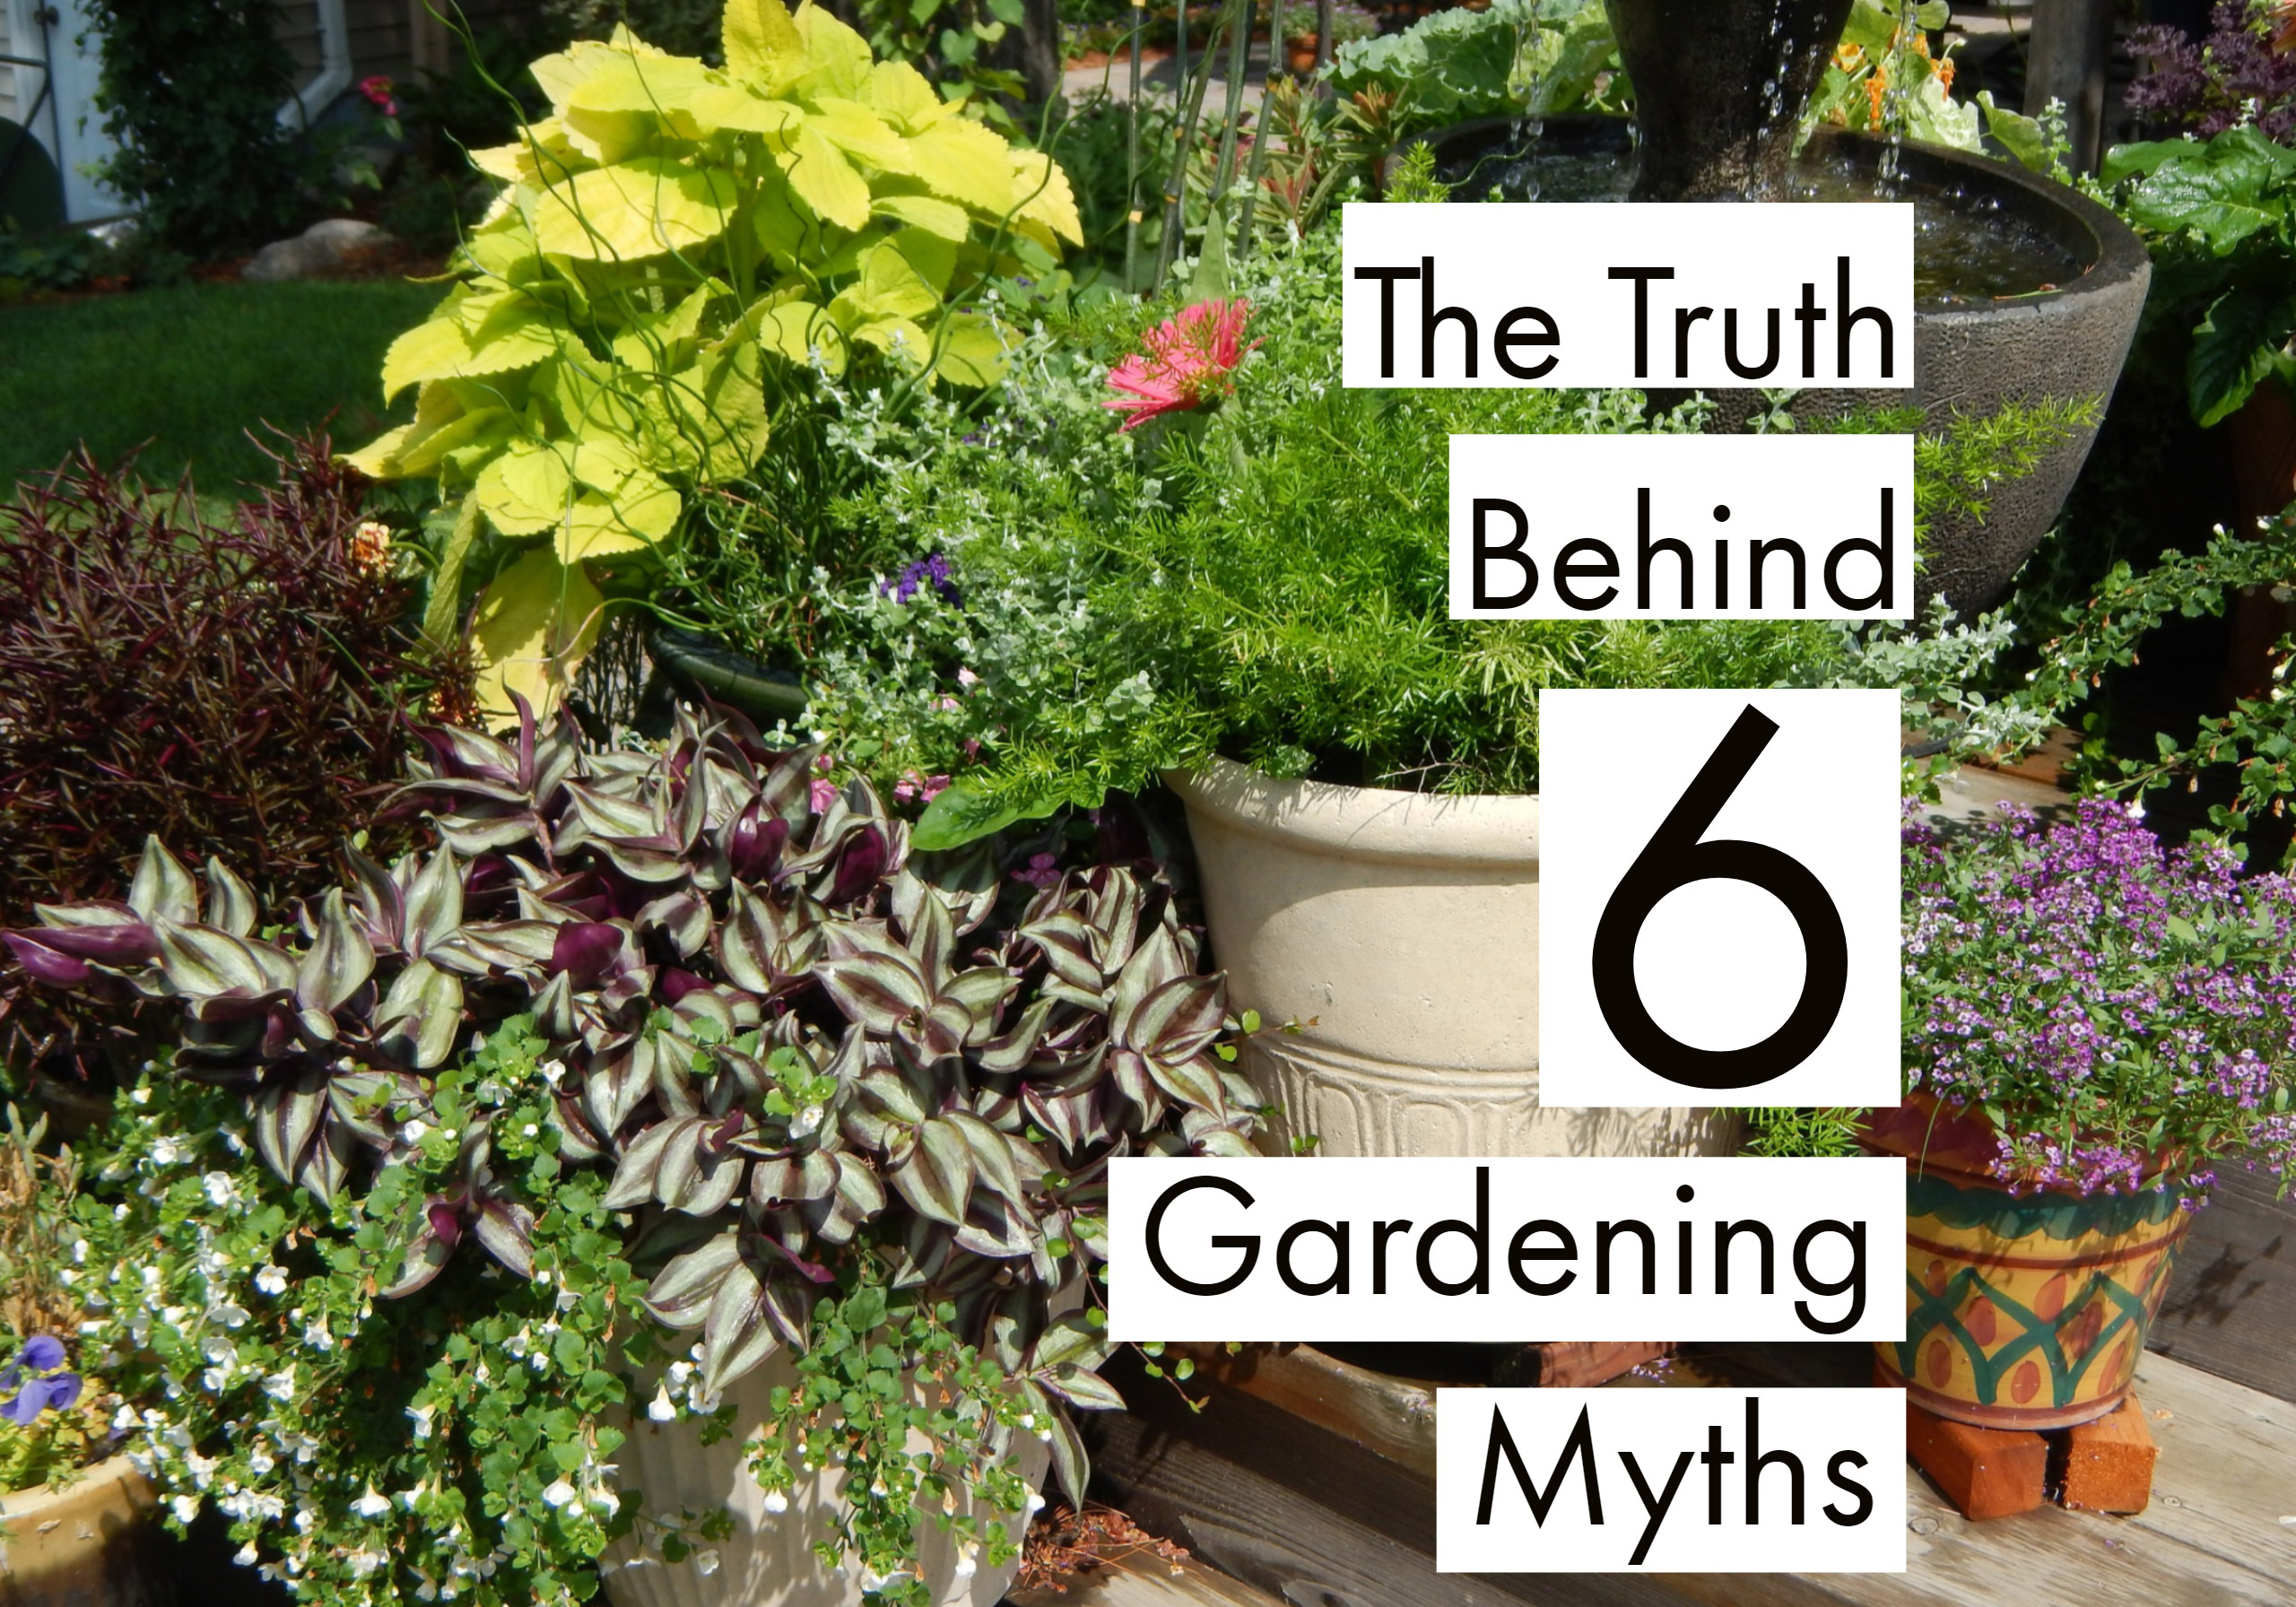 What's the truth behind 6 gardening myths?